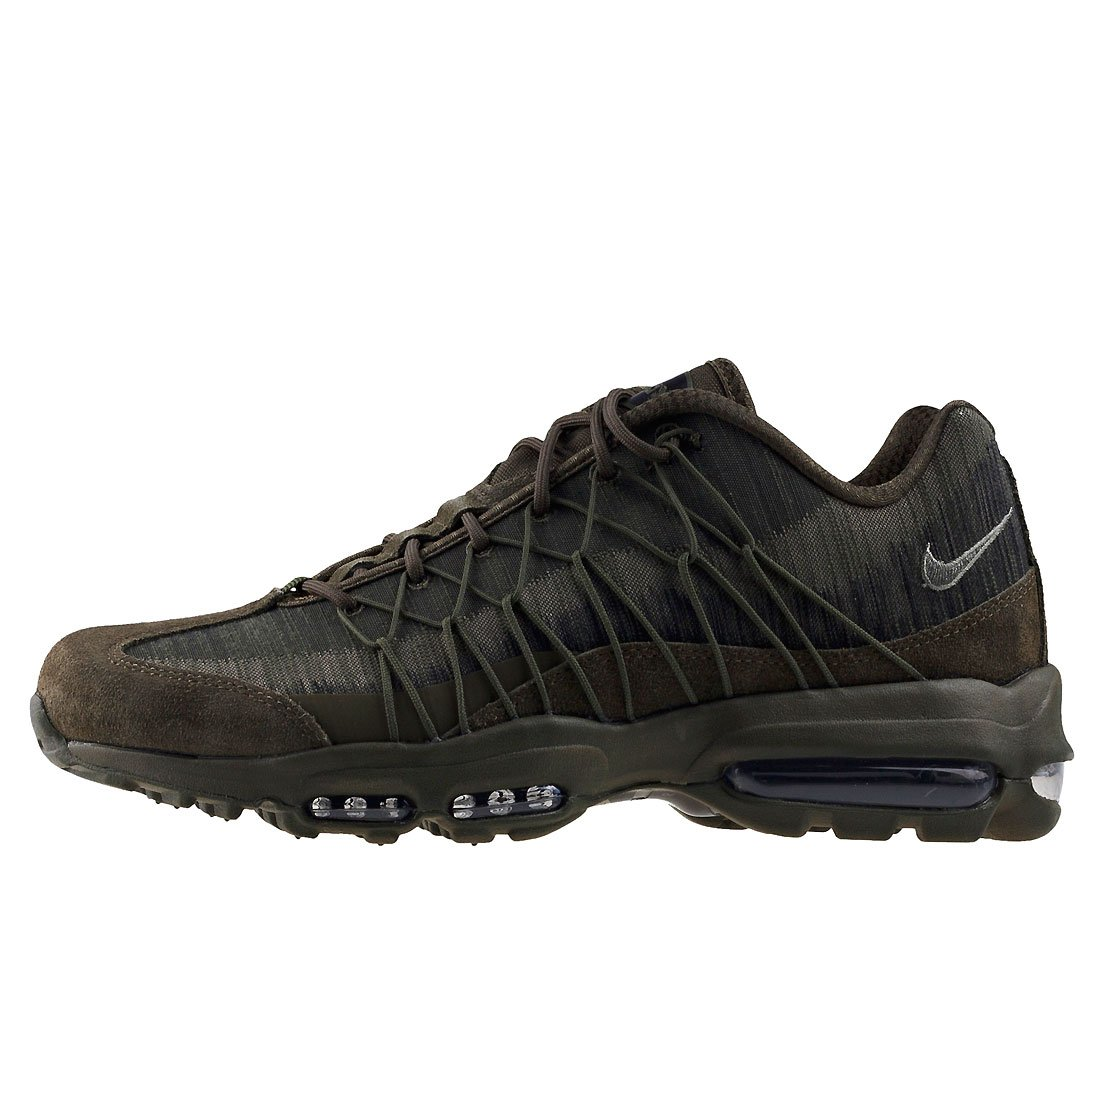 lowest price 2d253 26abf Amazon.com  Nike Mens Air Max 95 Ultra Jacquard Cargo Khaki 749771-301  (Size 8.5)  Fitness  Cross-Training